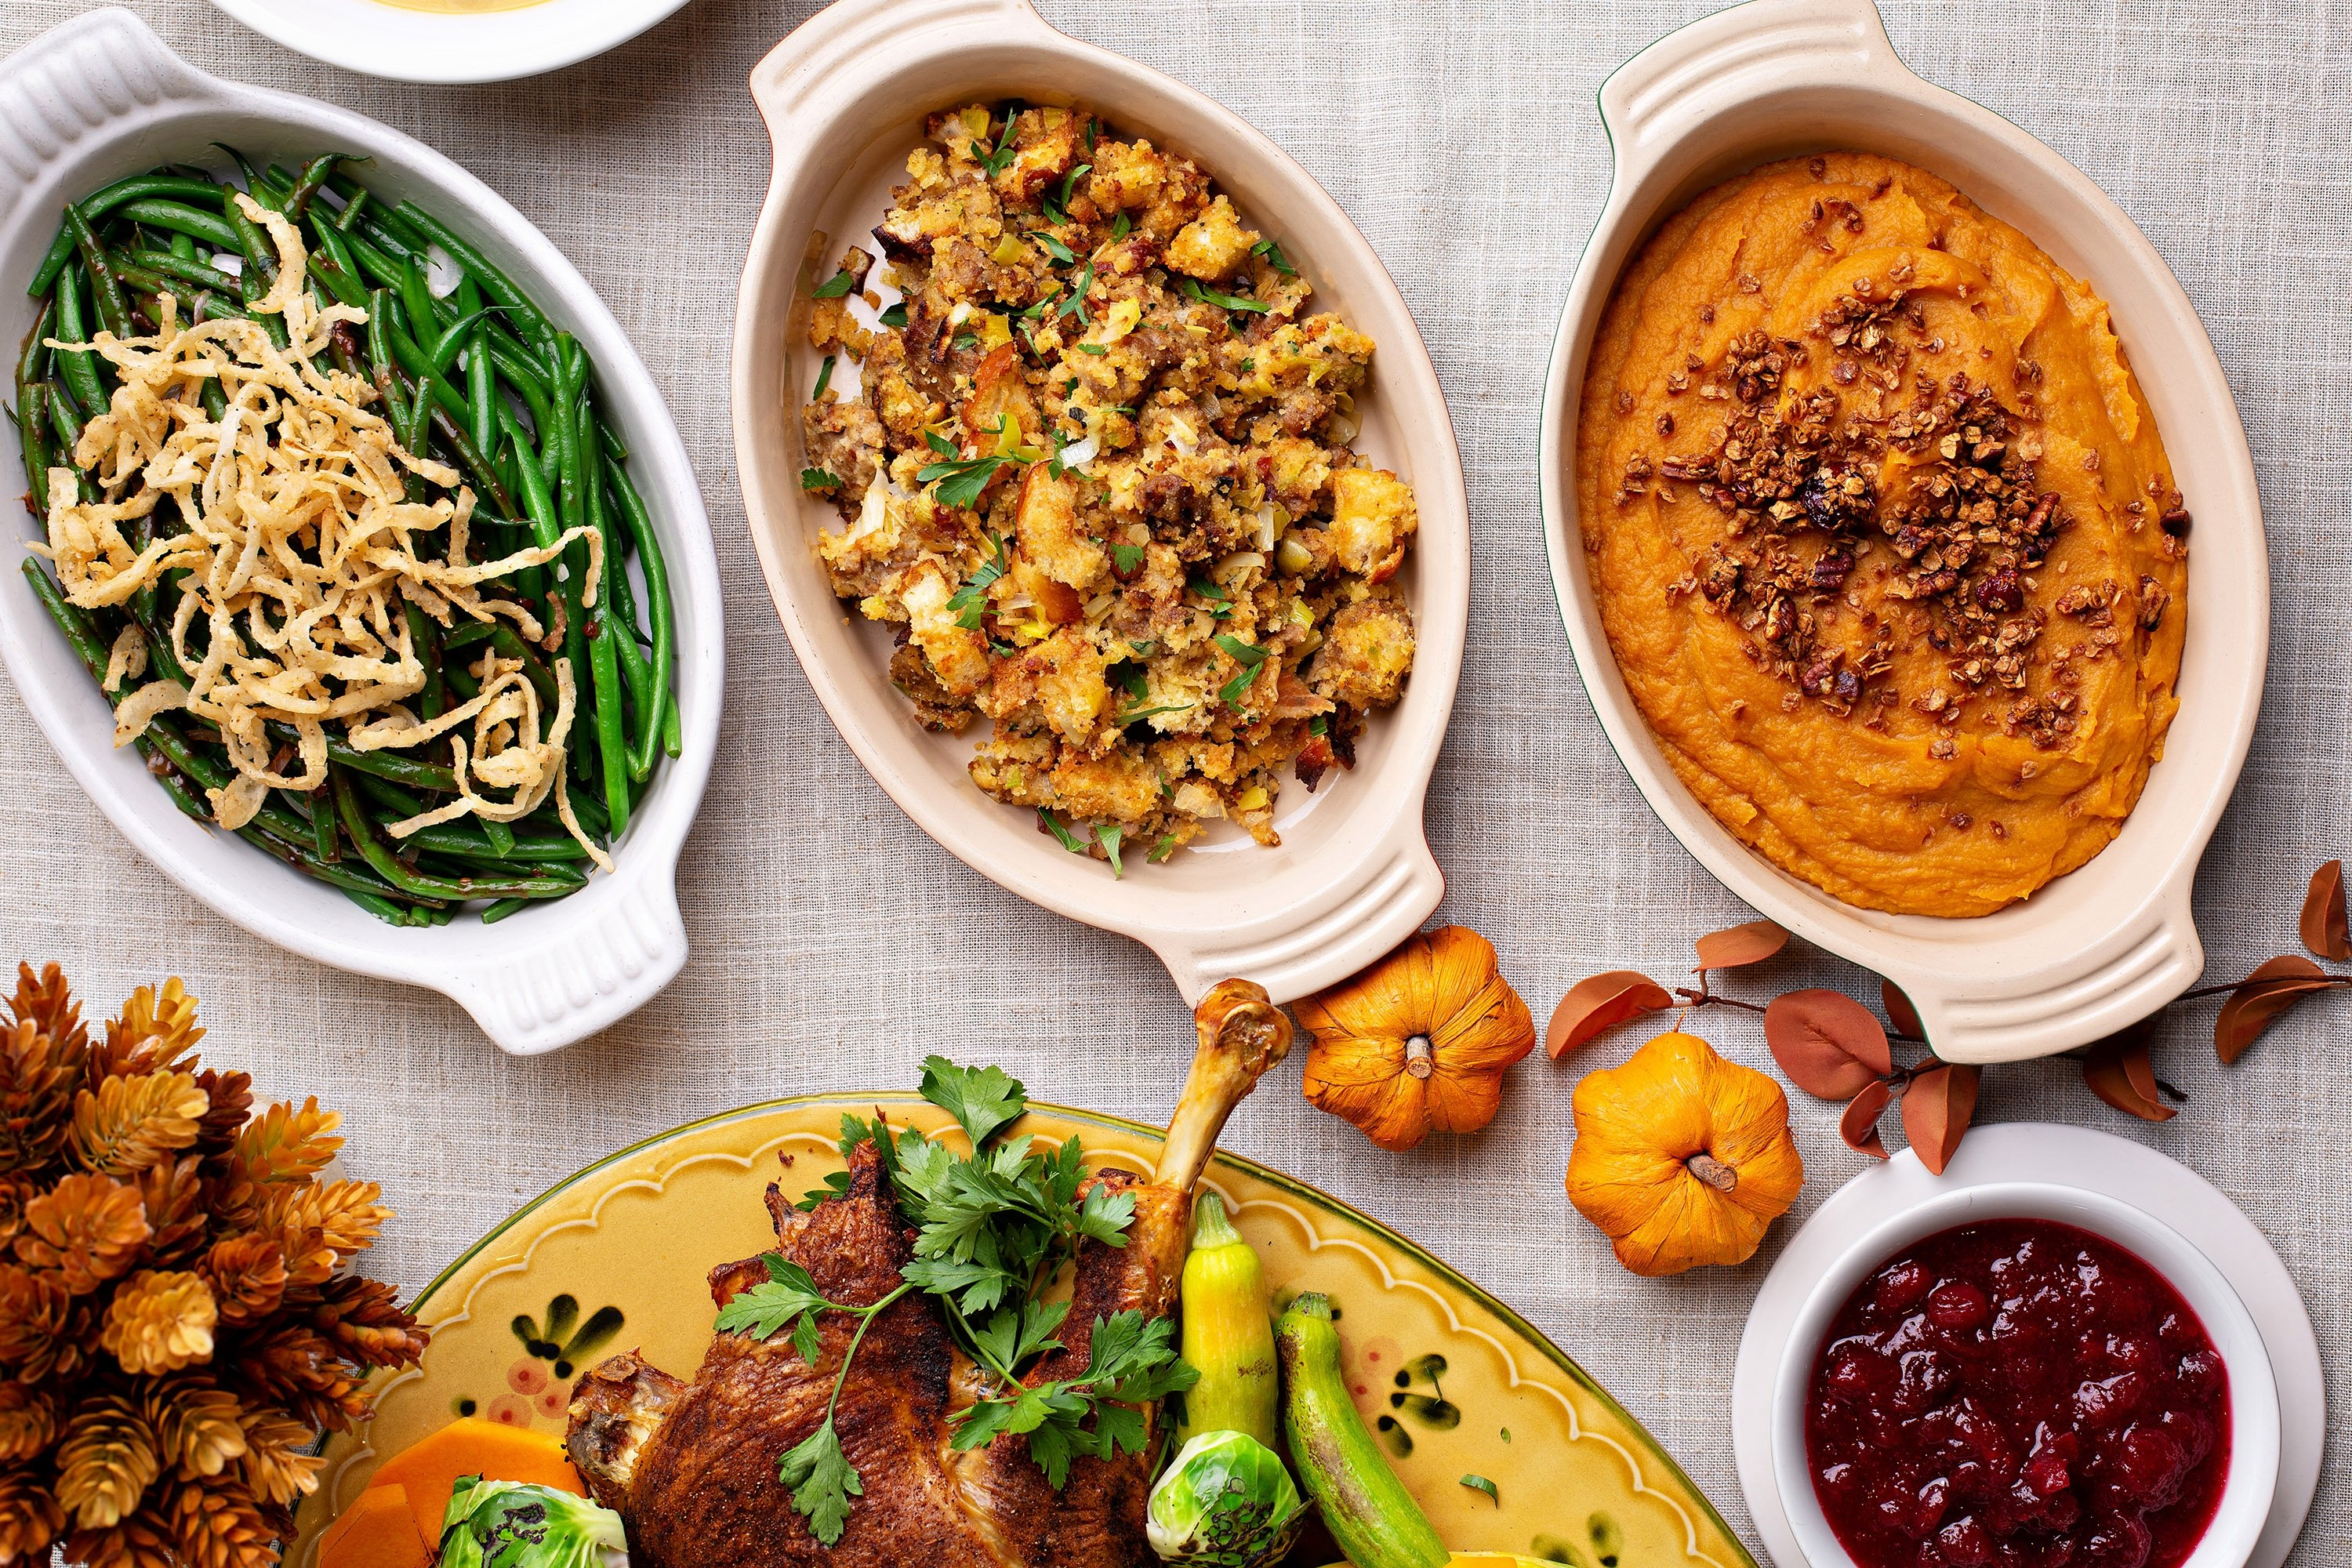 If you want to go fancier with your Thanksgiving sides, try swapping mashed potatoes for sweet potatoes. (Shutterstock Photo)